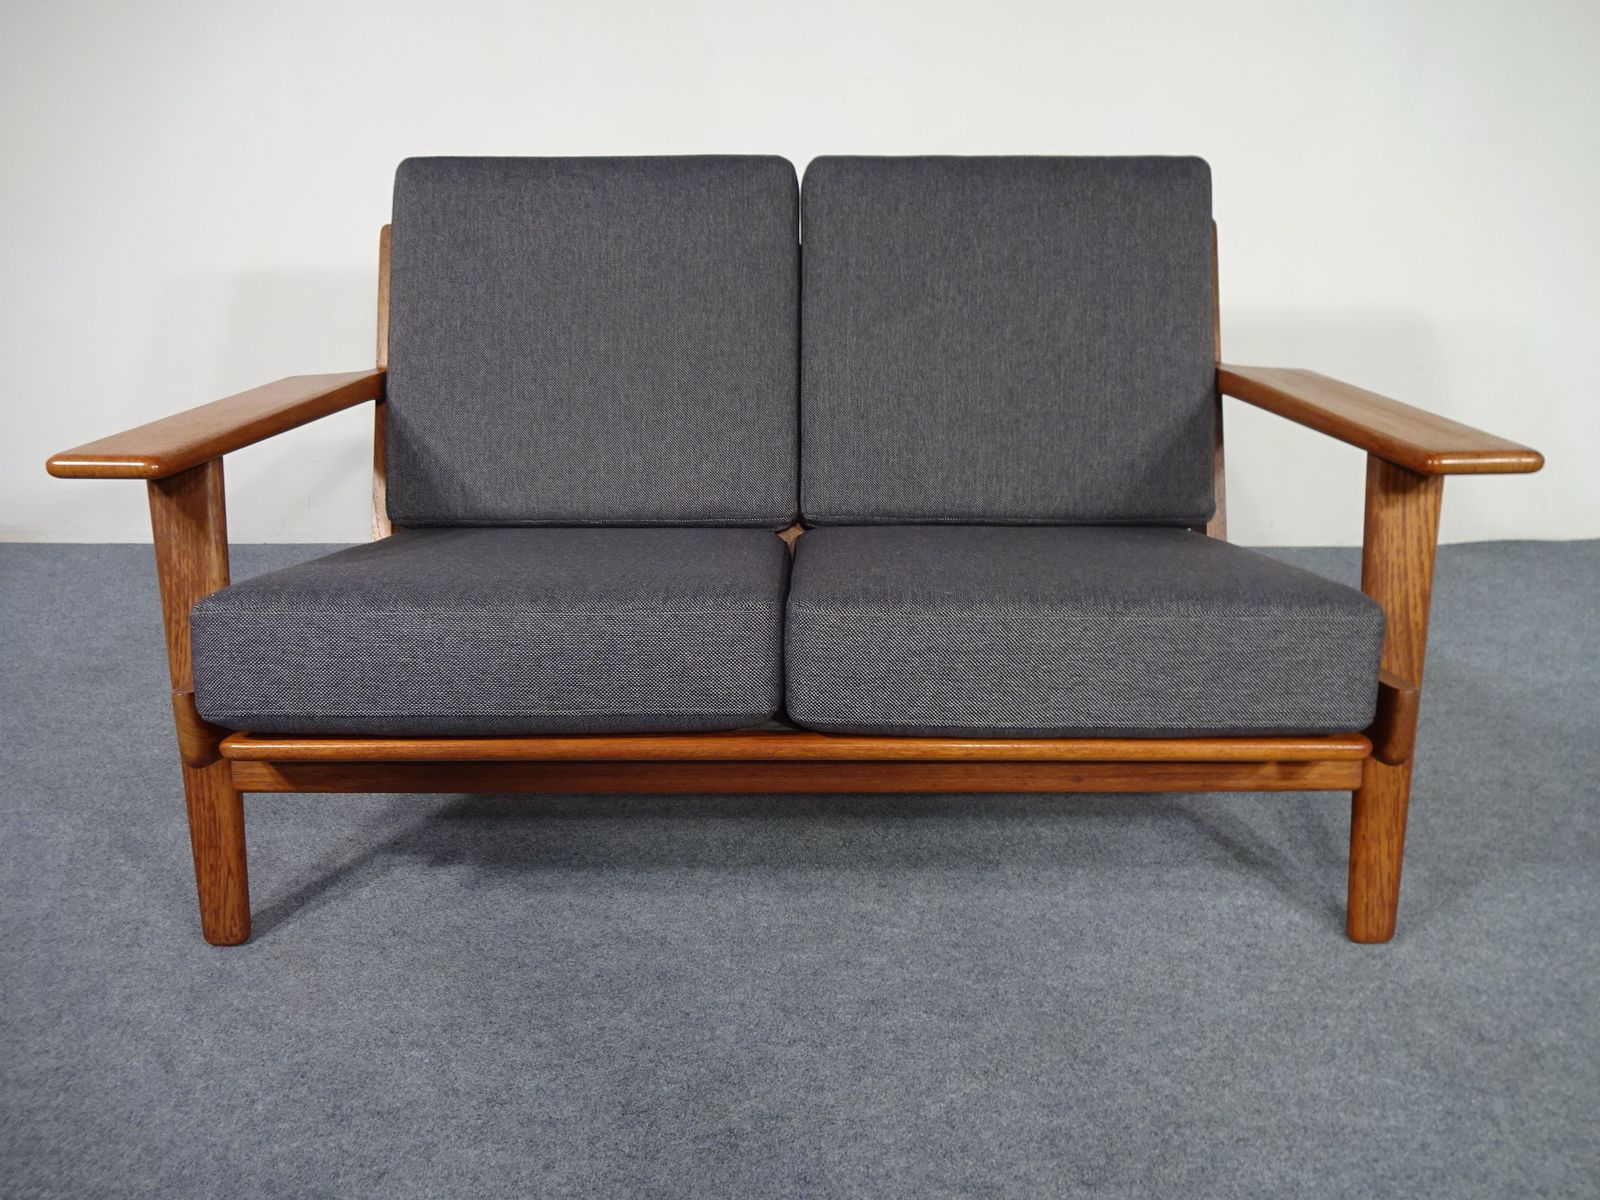 GE 290 Teak 2 Seater Sofa by Hans J Wegner for Getama 1960s for